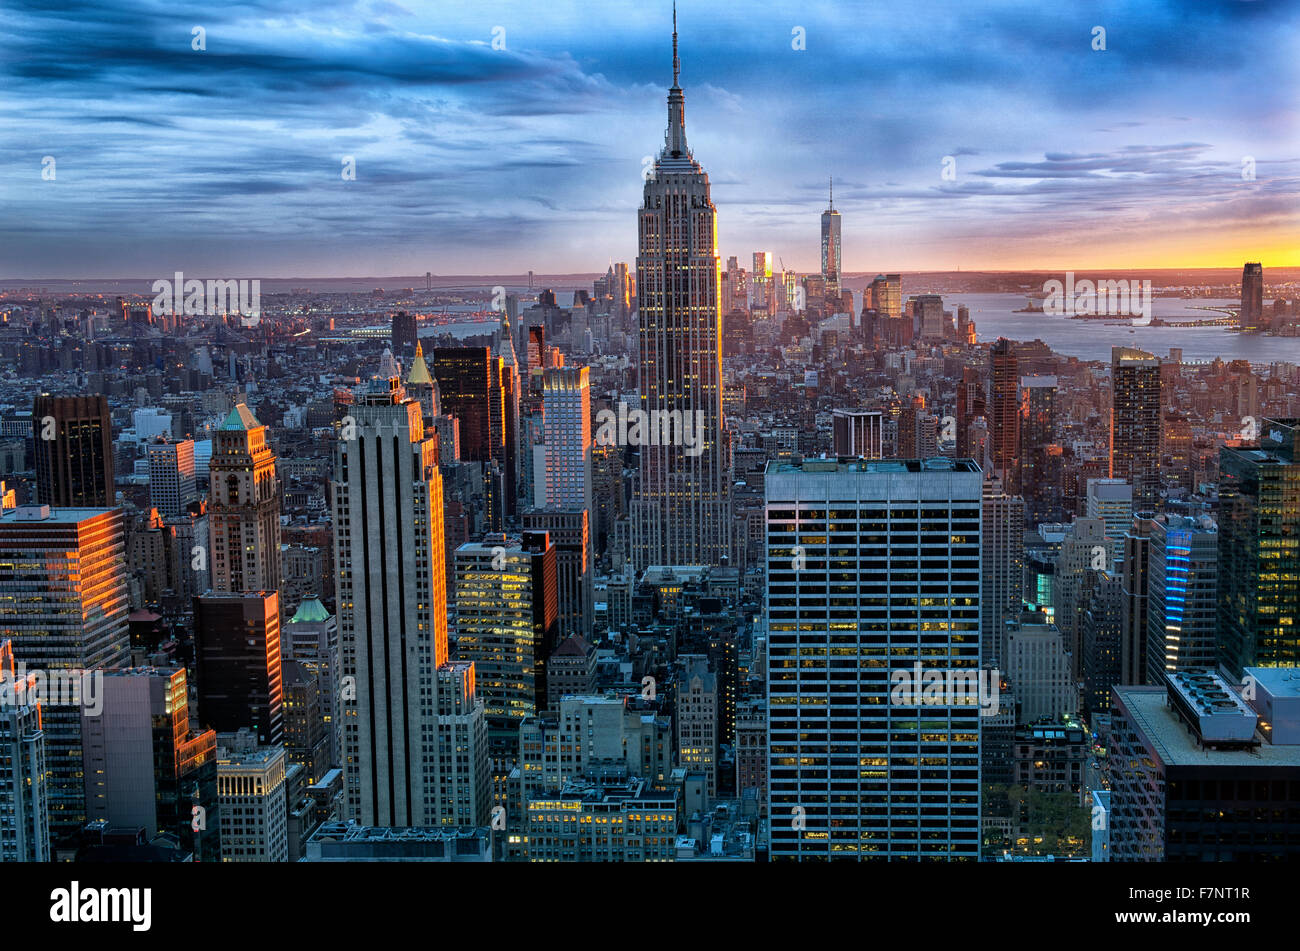 Manhattan skyline looking South towards Empire State building, New York City,  USA., from the roof of the Rockefeller - Stock Image